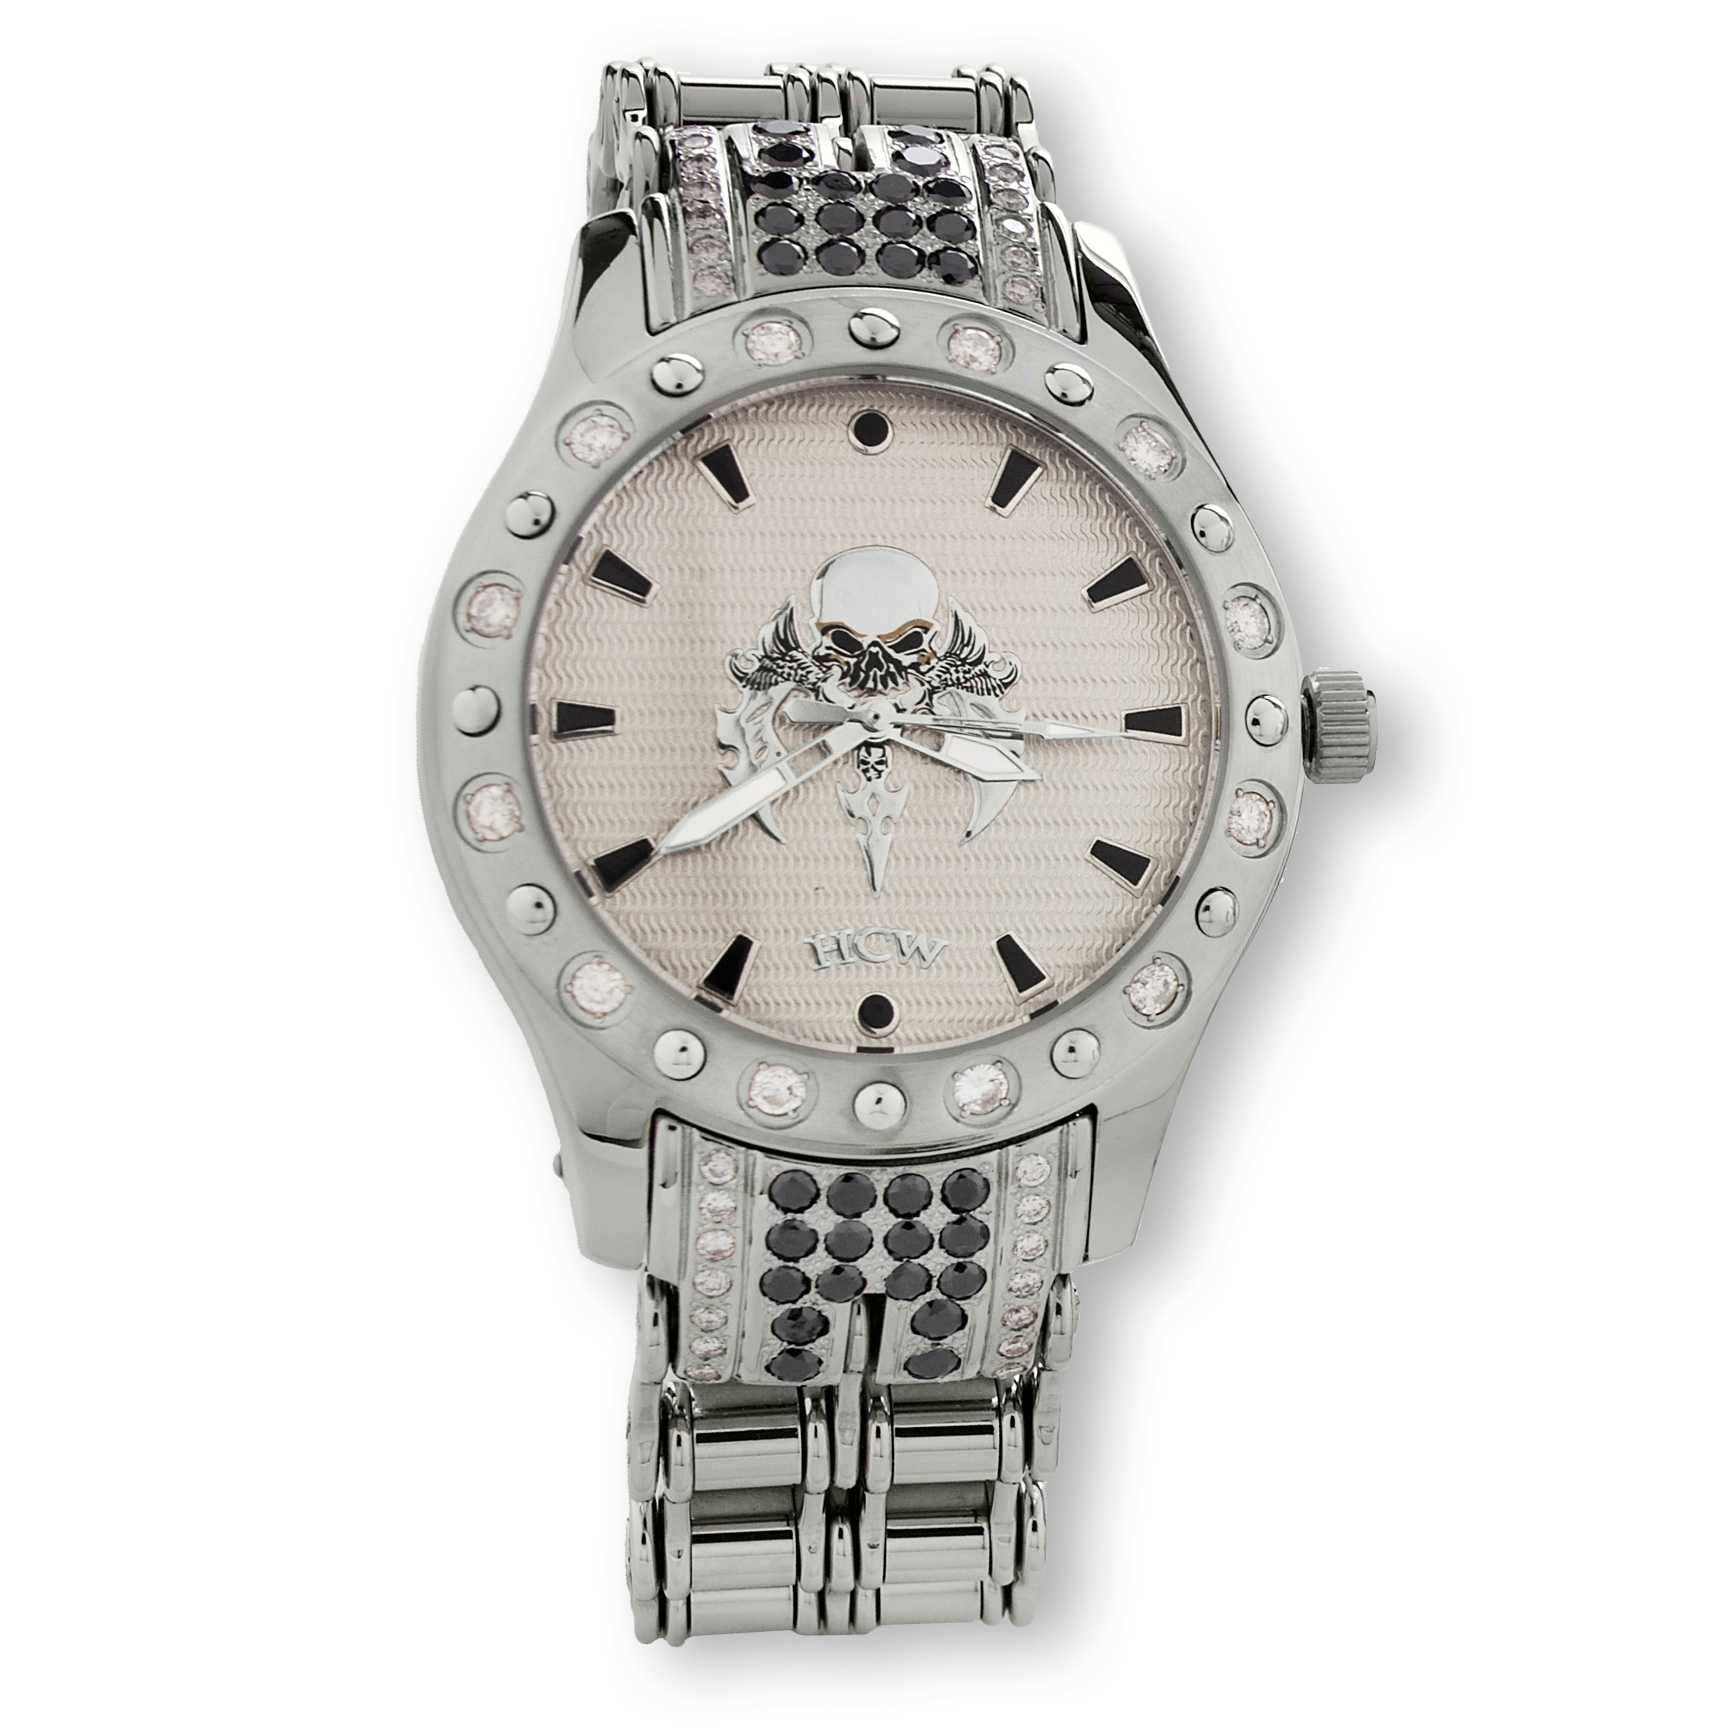 HCW206DC-WT-BK HCW206DC-WT-BK Blade Runner stainless steel watch, White & Black Diamonds